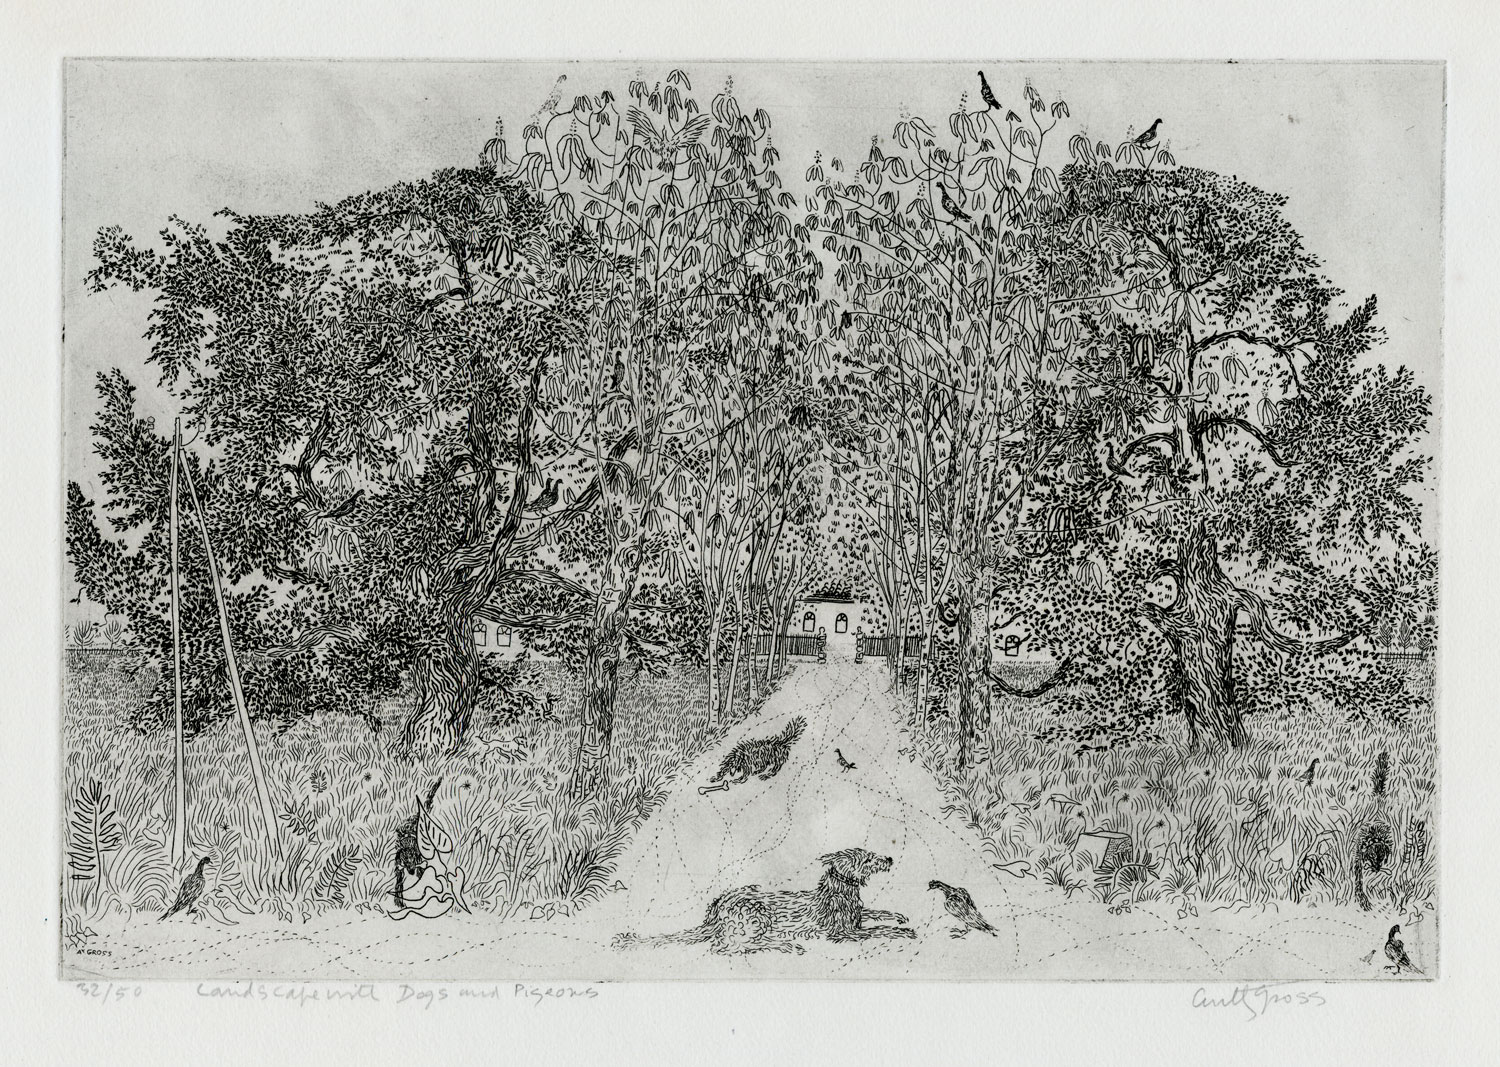 Landscape with Dogs and Pigeons